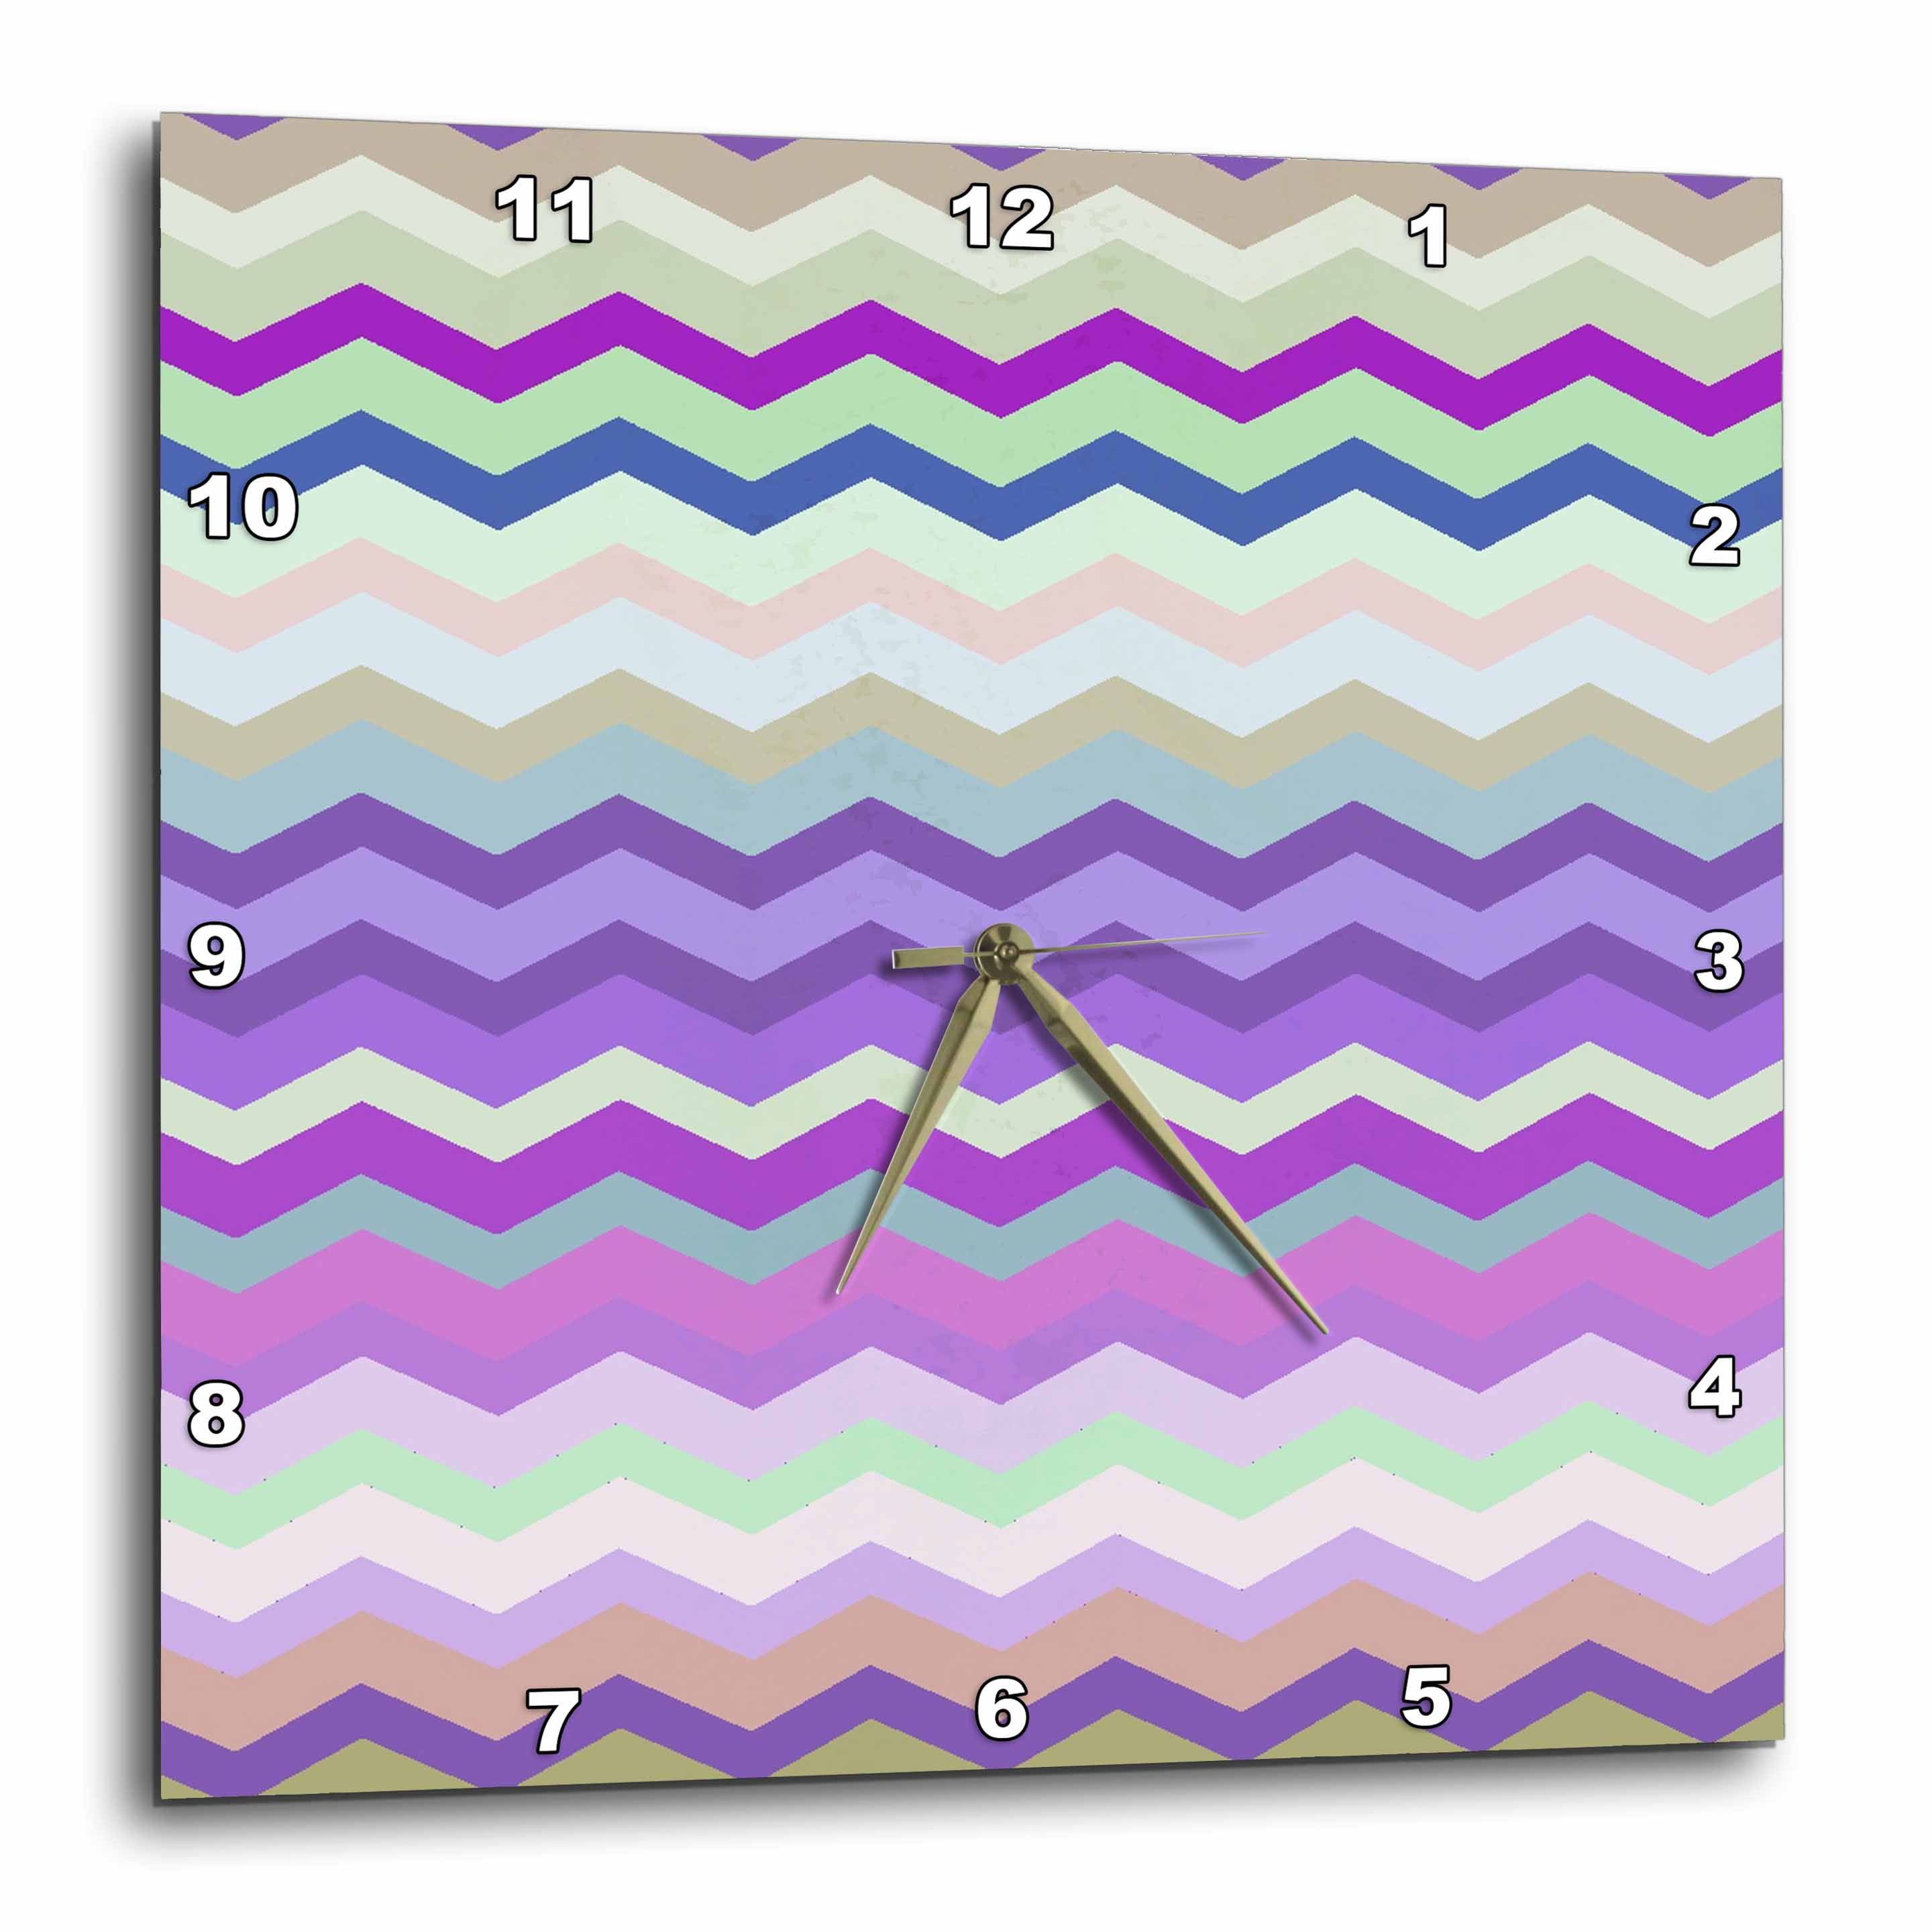 3dRose - InspirationzStore Chevron Patterns - Purple Green and Beige Colorful Zig Zag Chevron Pattern inspired by knitted sweater patt at Sears.com